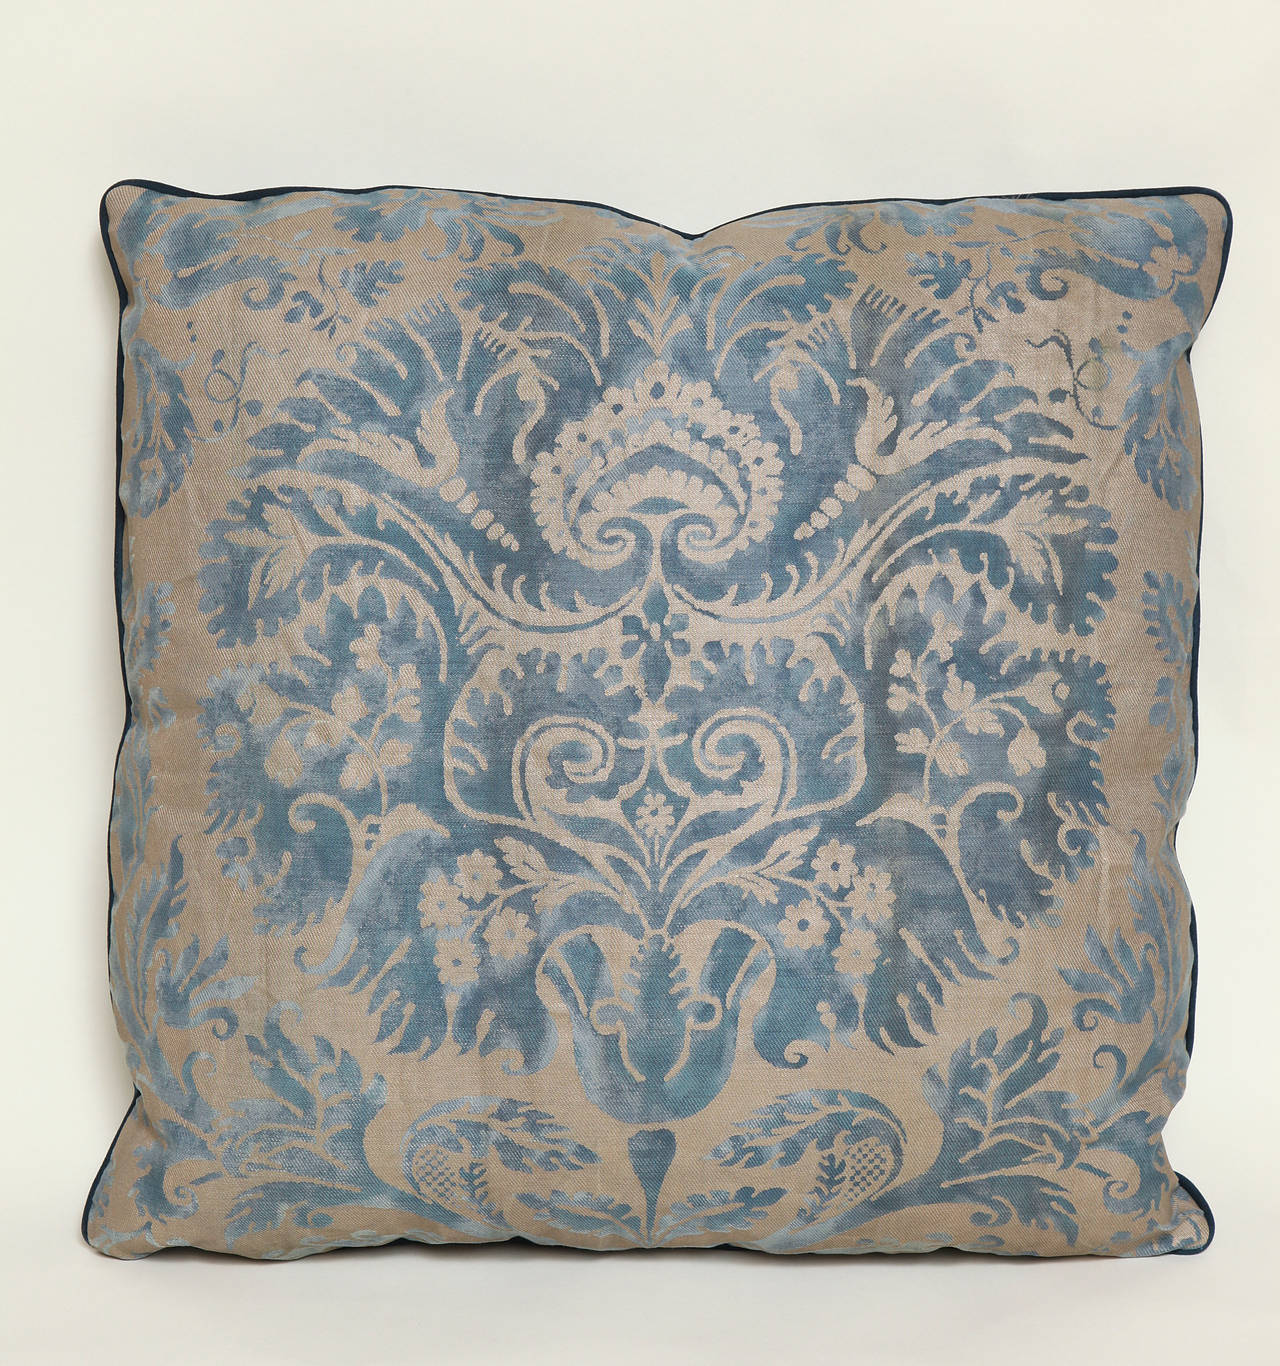 A Fortuny fabric cushion in the Demedici pattern, patinated silver ground and welt trim with midnight blue wool sateen back, the pattern, a 17th century Italian design named for the famous Florentine banking family, political dynasty and royal